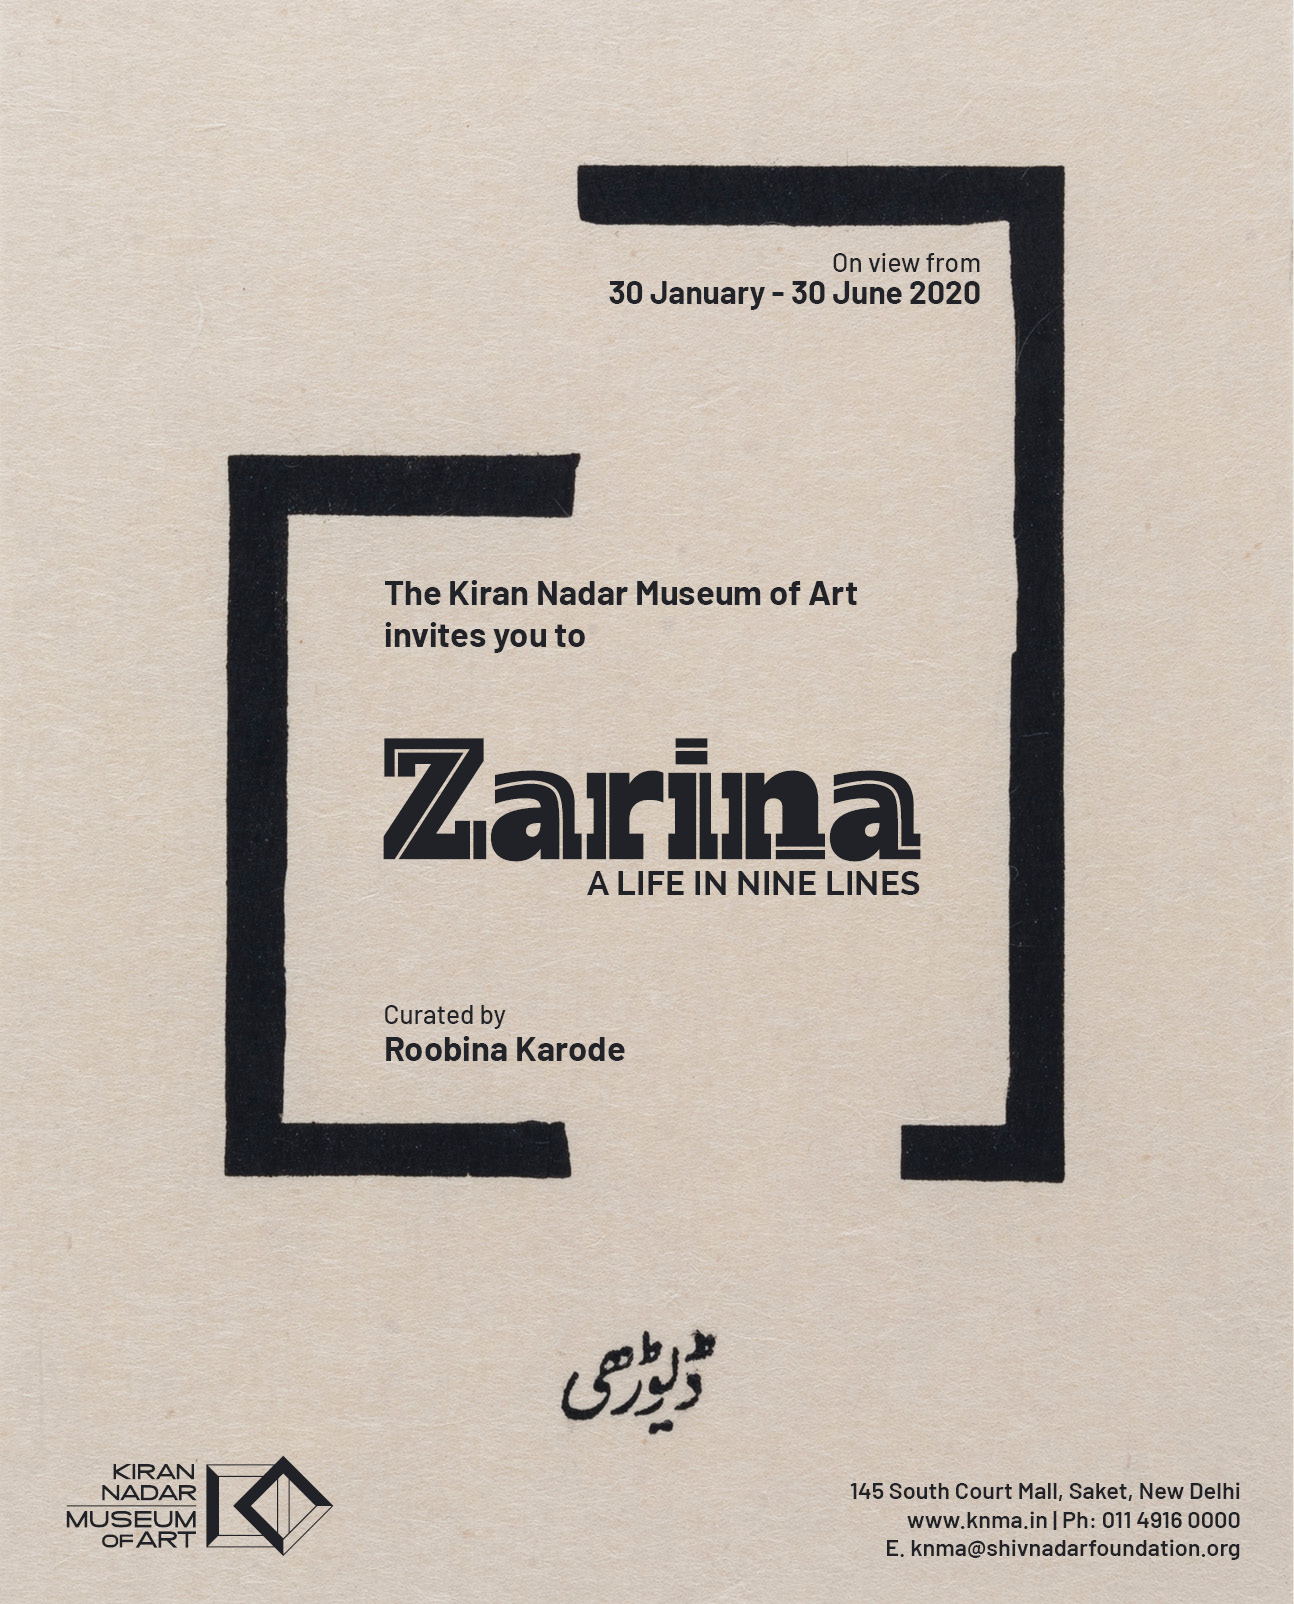 Zarina – A Life in Nine Lines